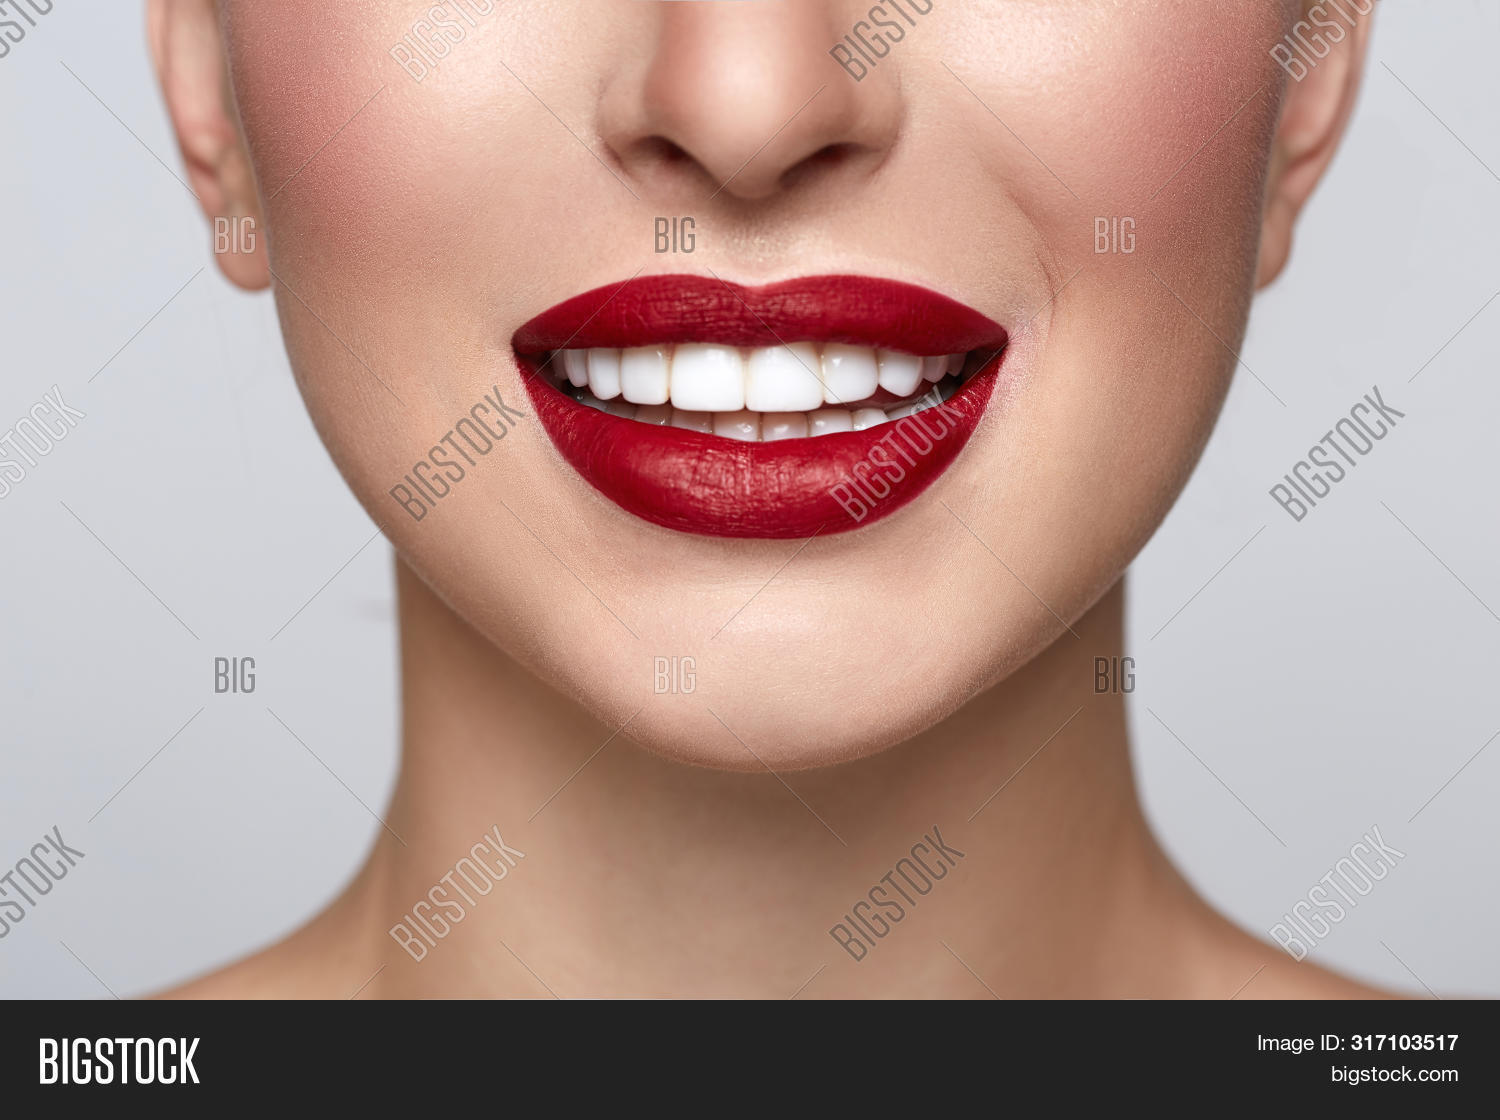 adult,aesthetic,alignment,background,beautiful,beauty,braces,care,caries,clinic,close,closeup,color,dental,dentistry,face,fillers,girl,happy,health,healthy,hygiene,injections,lips,lipstick,makeup,medical,medicine,model,mouth,open,oral,orthodontic,people,perfect,person,plastic,sexy,smile,straight,teeth,treatment,veneers,white,whitening,women,young